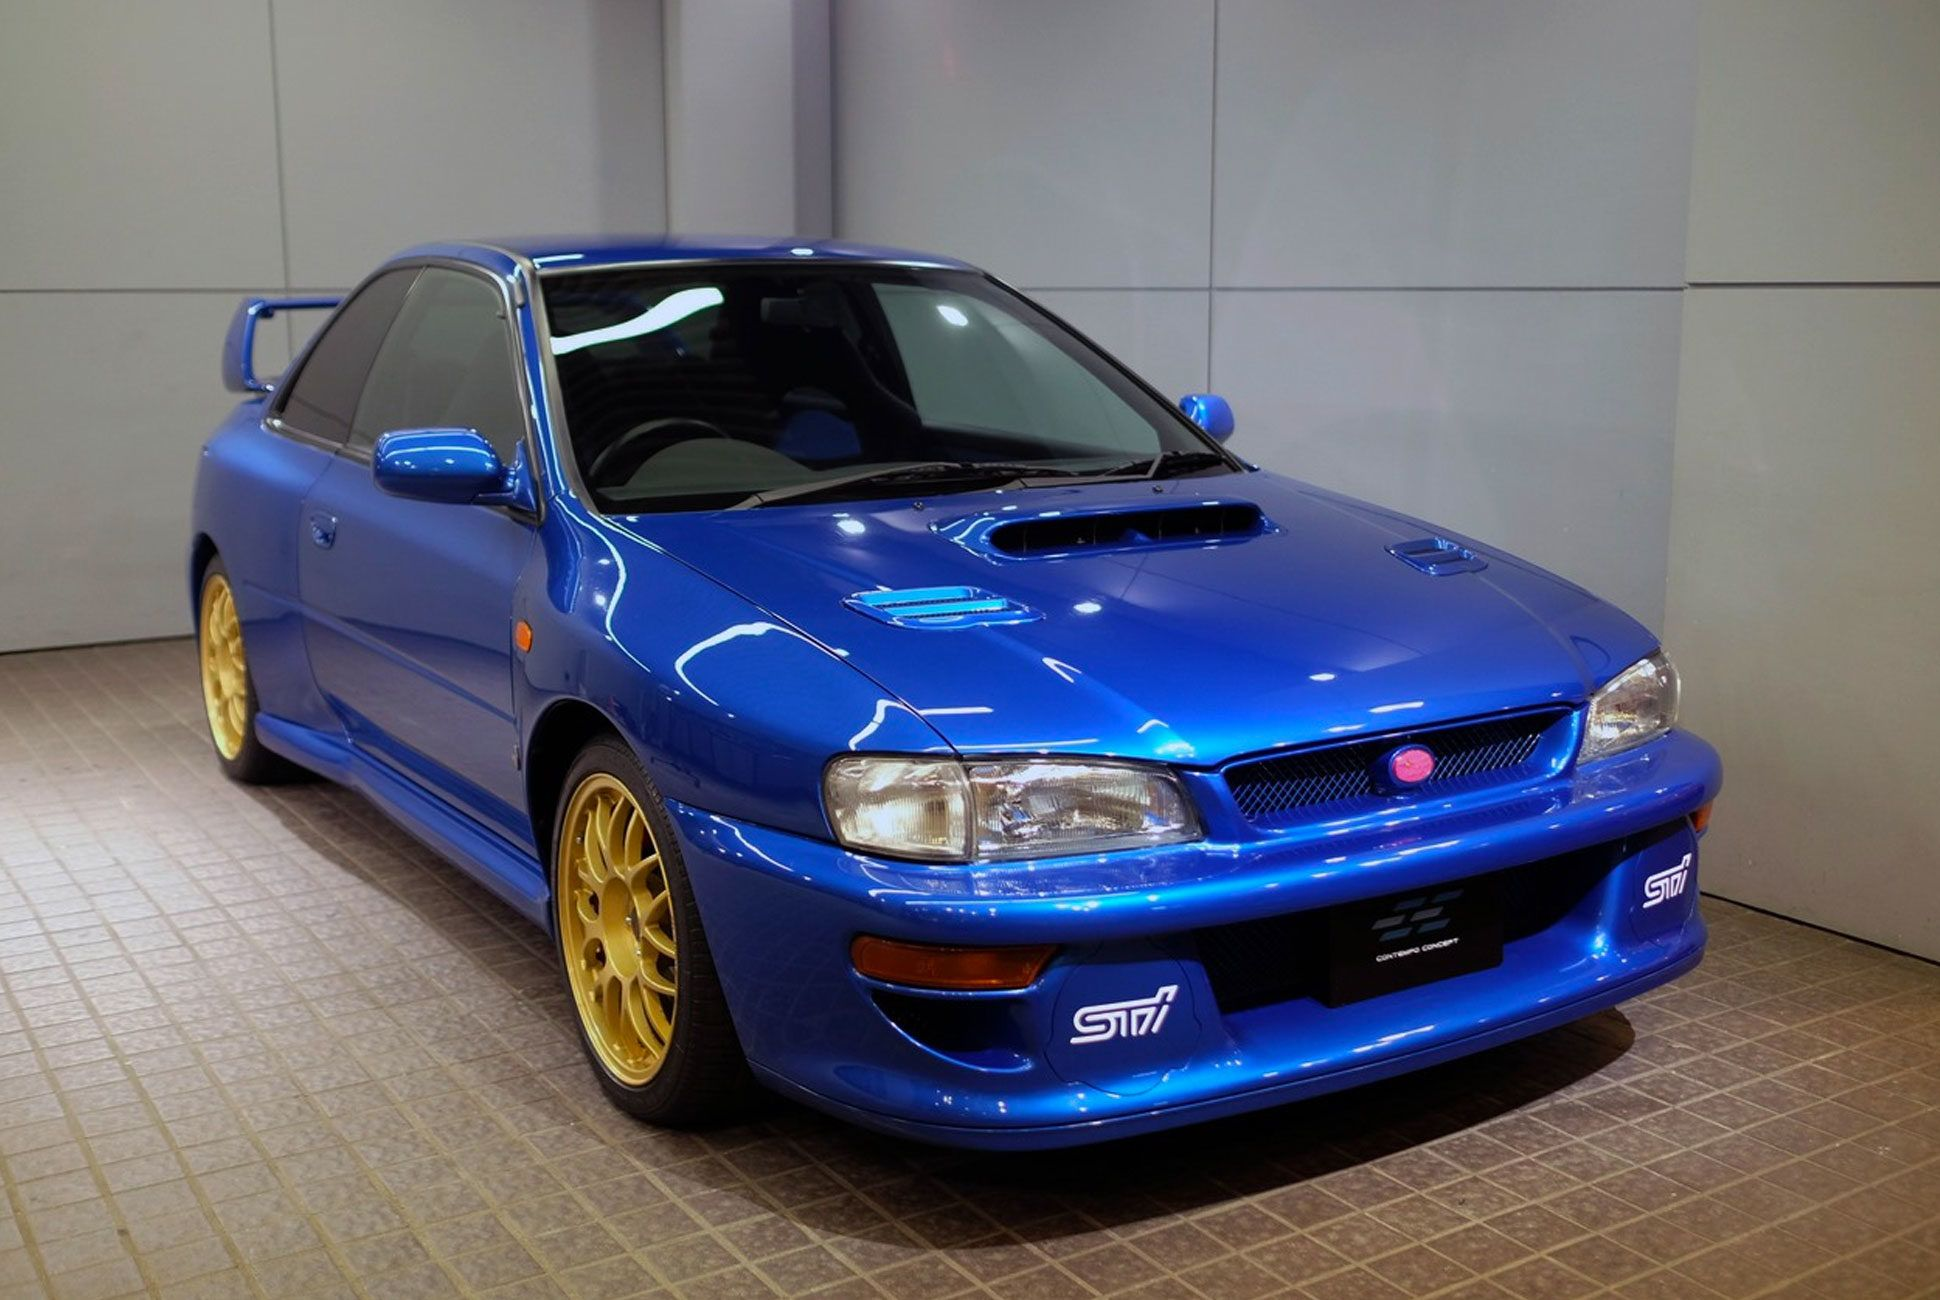 The Most Coveted Subaru Impreza Sti Ever Is Up For Sale Subaru Impreza Impreza Subaru